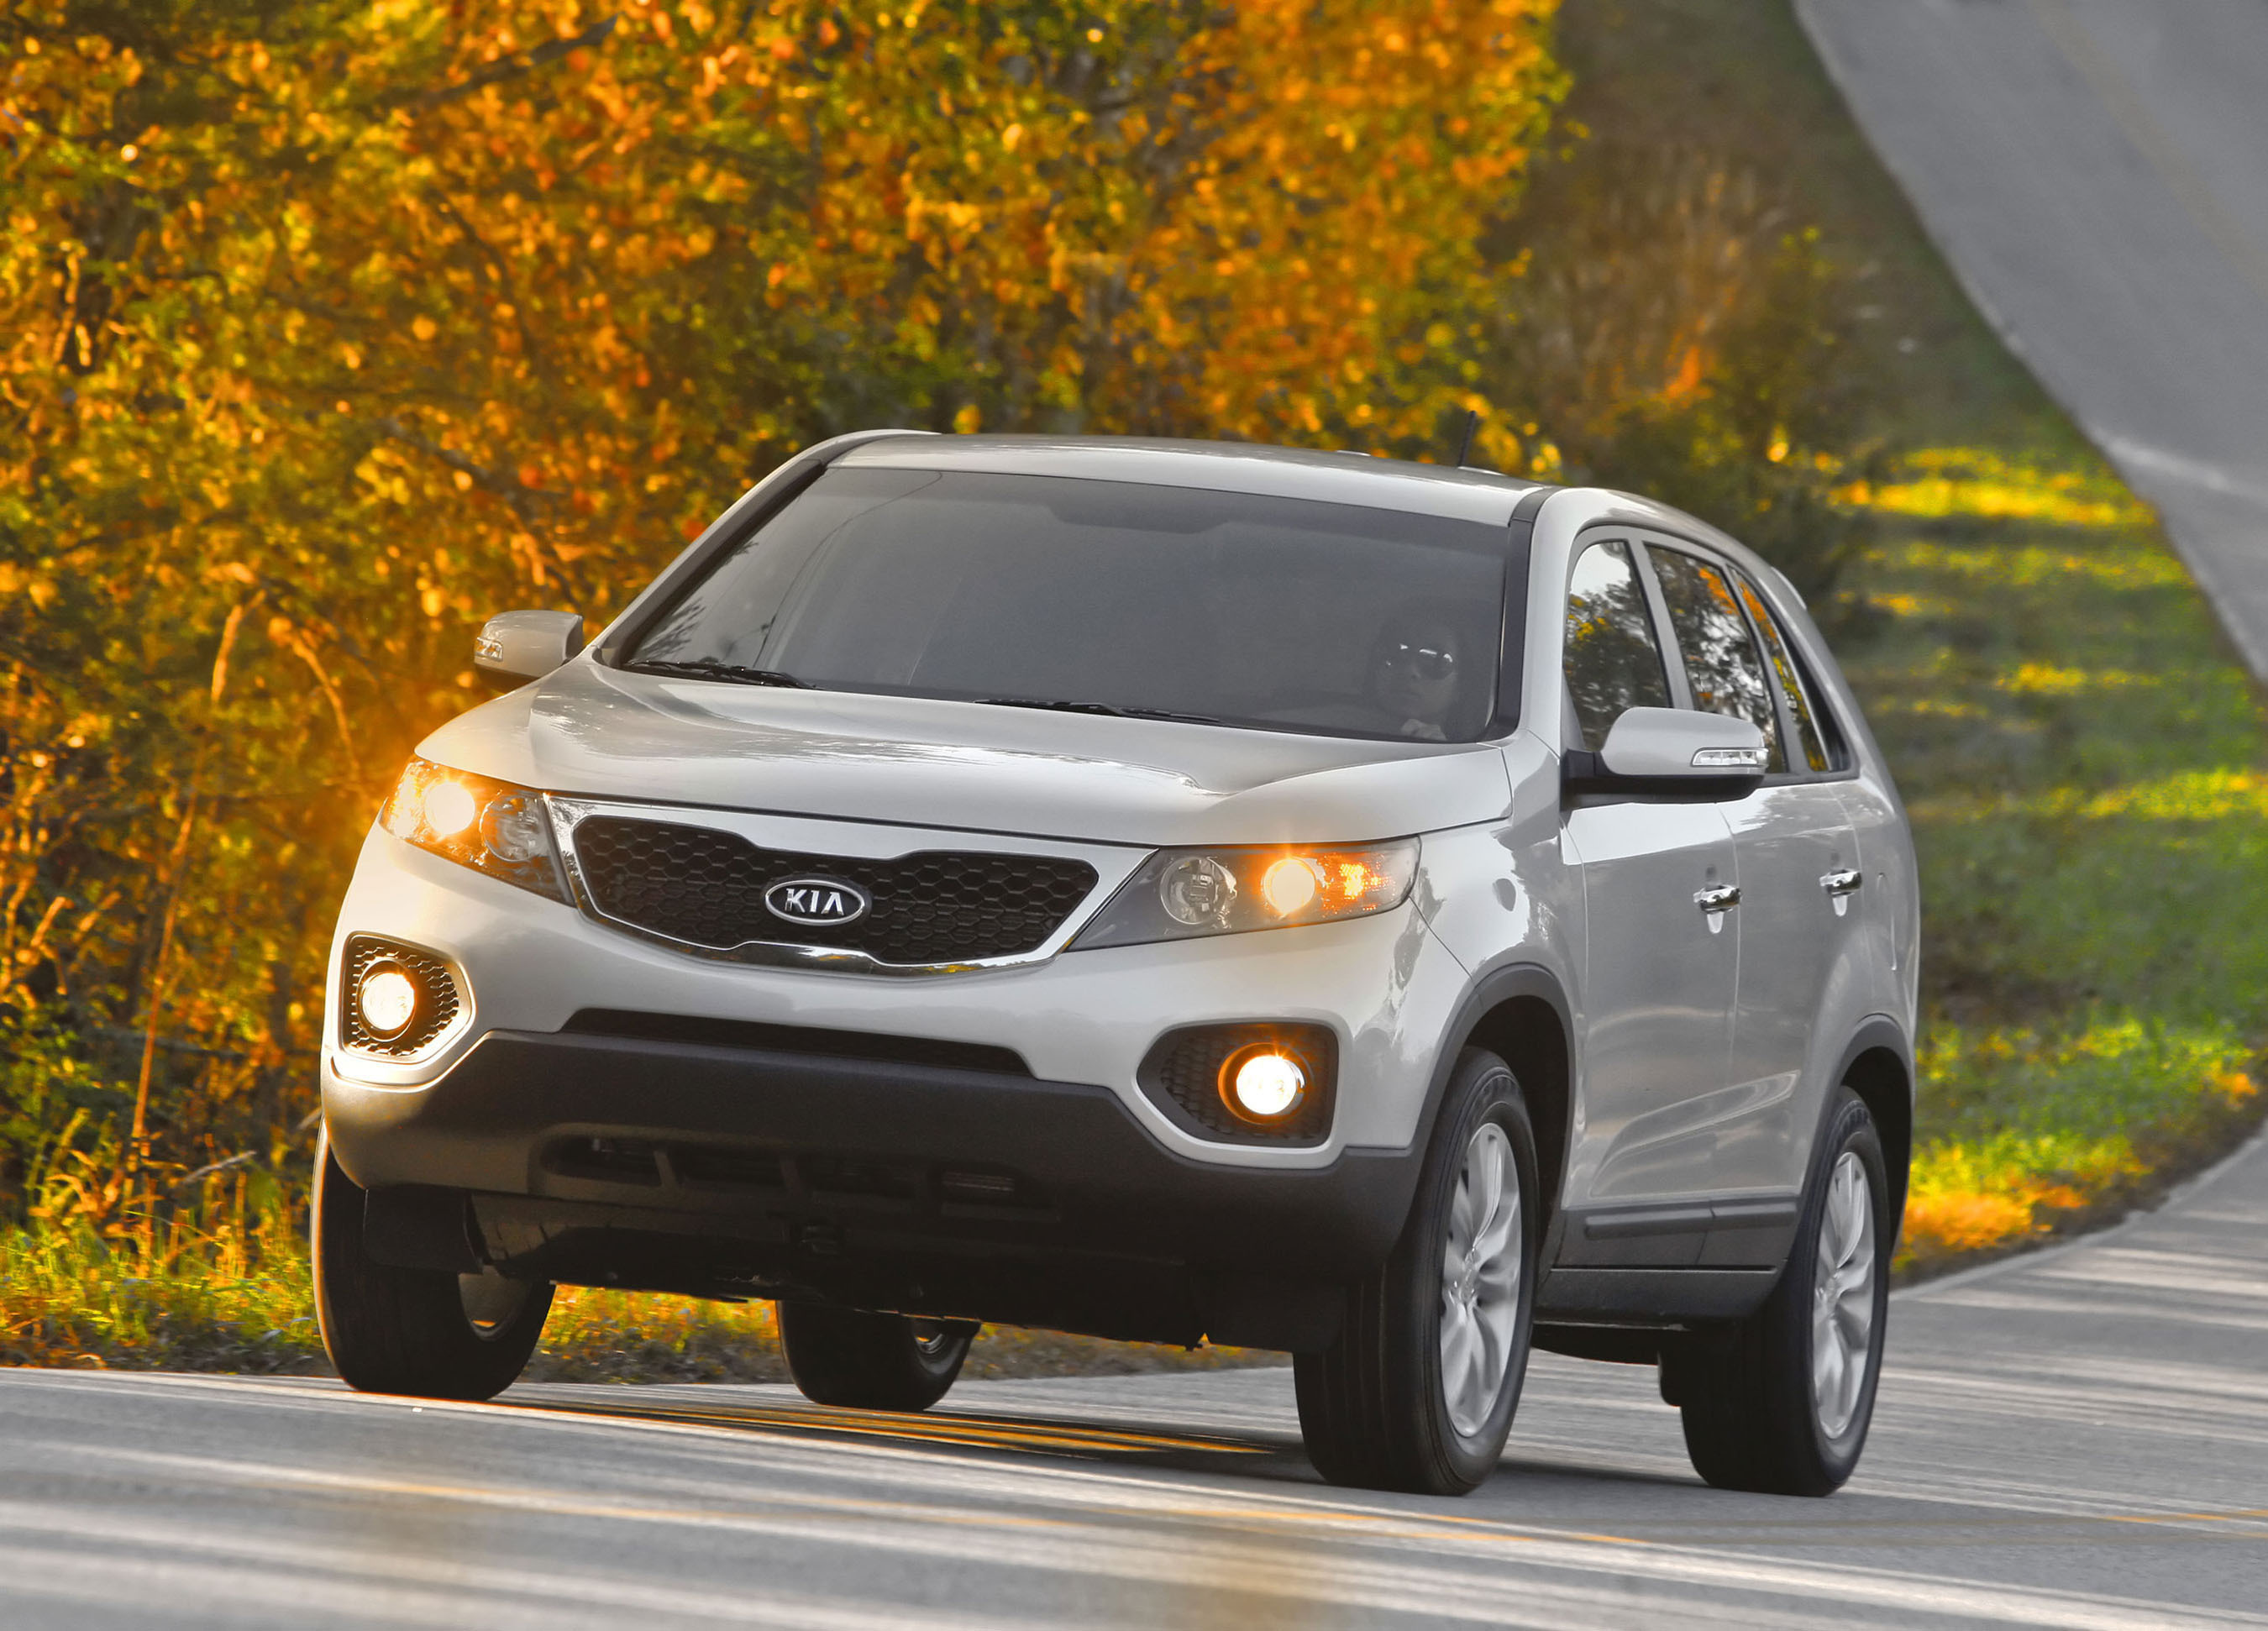 2011 kia sorento enters cuv segment. Black Bedroom Furniture Sets. Home Design Ideas